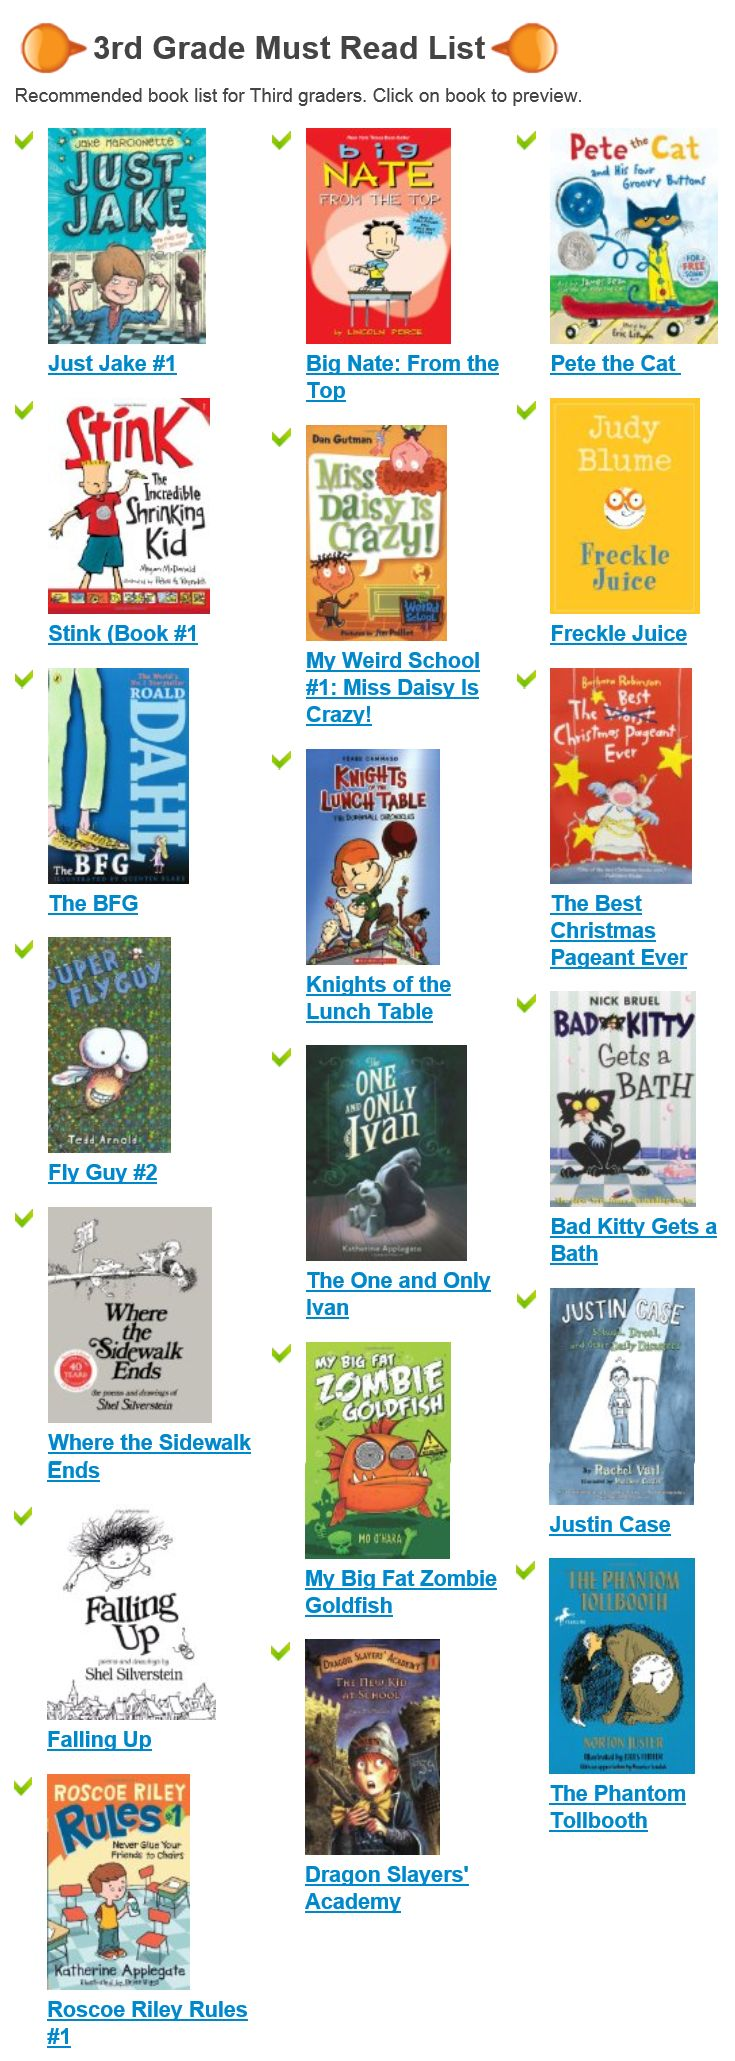 Top Most Popular 3rd Grade Book Lists For Kids Today!